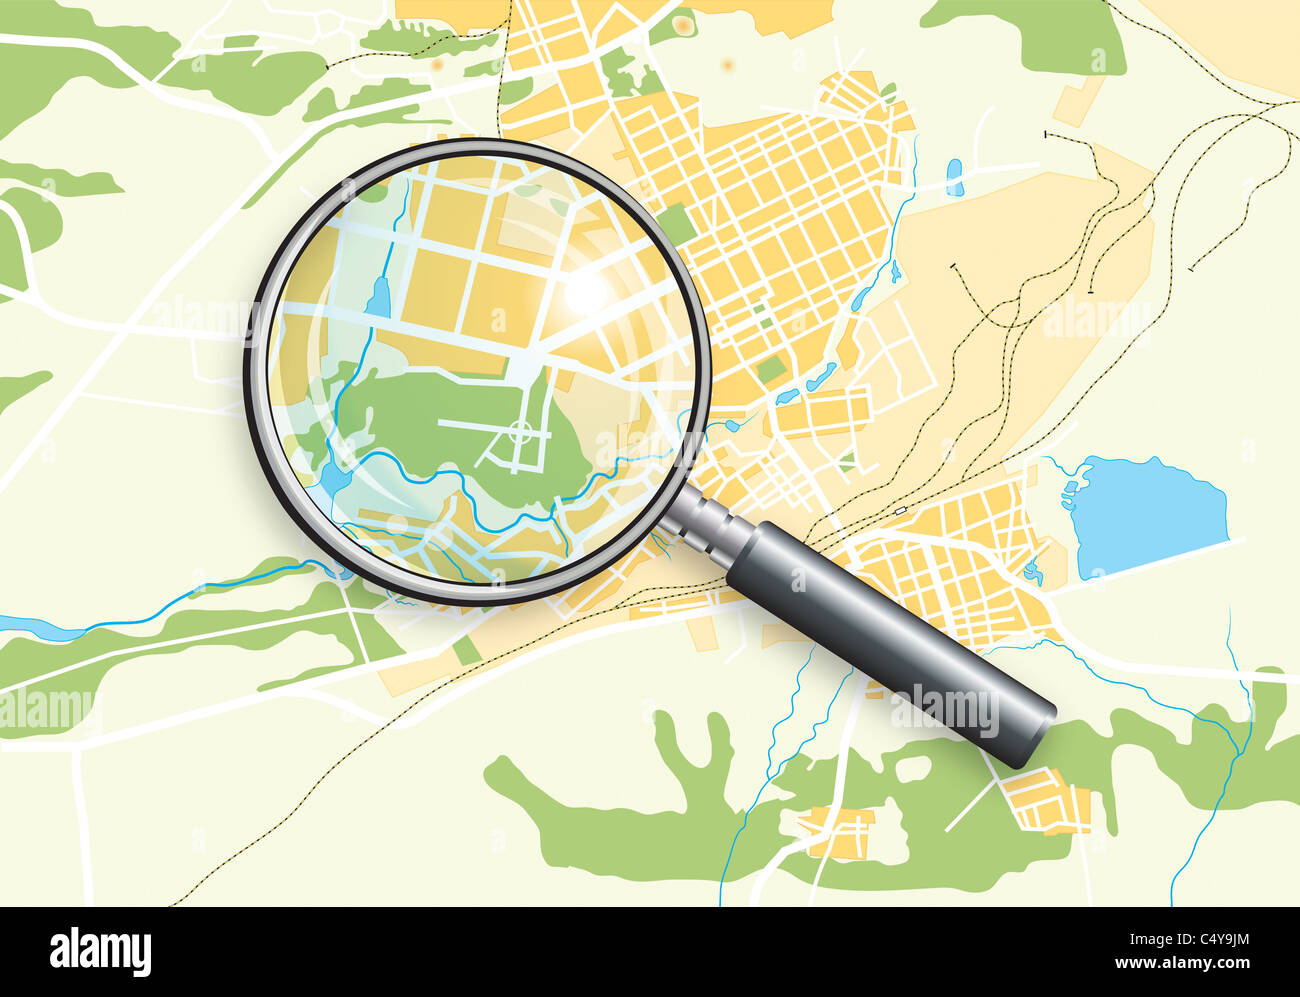 City Geo Map and Zoom Lens - Stock Image